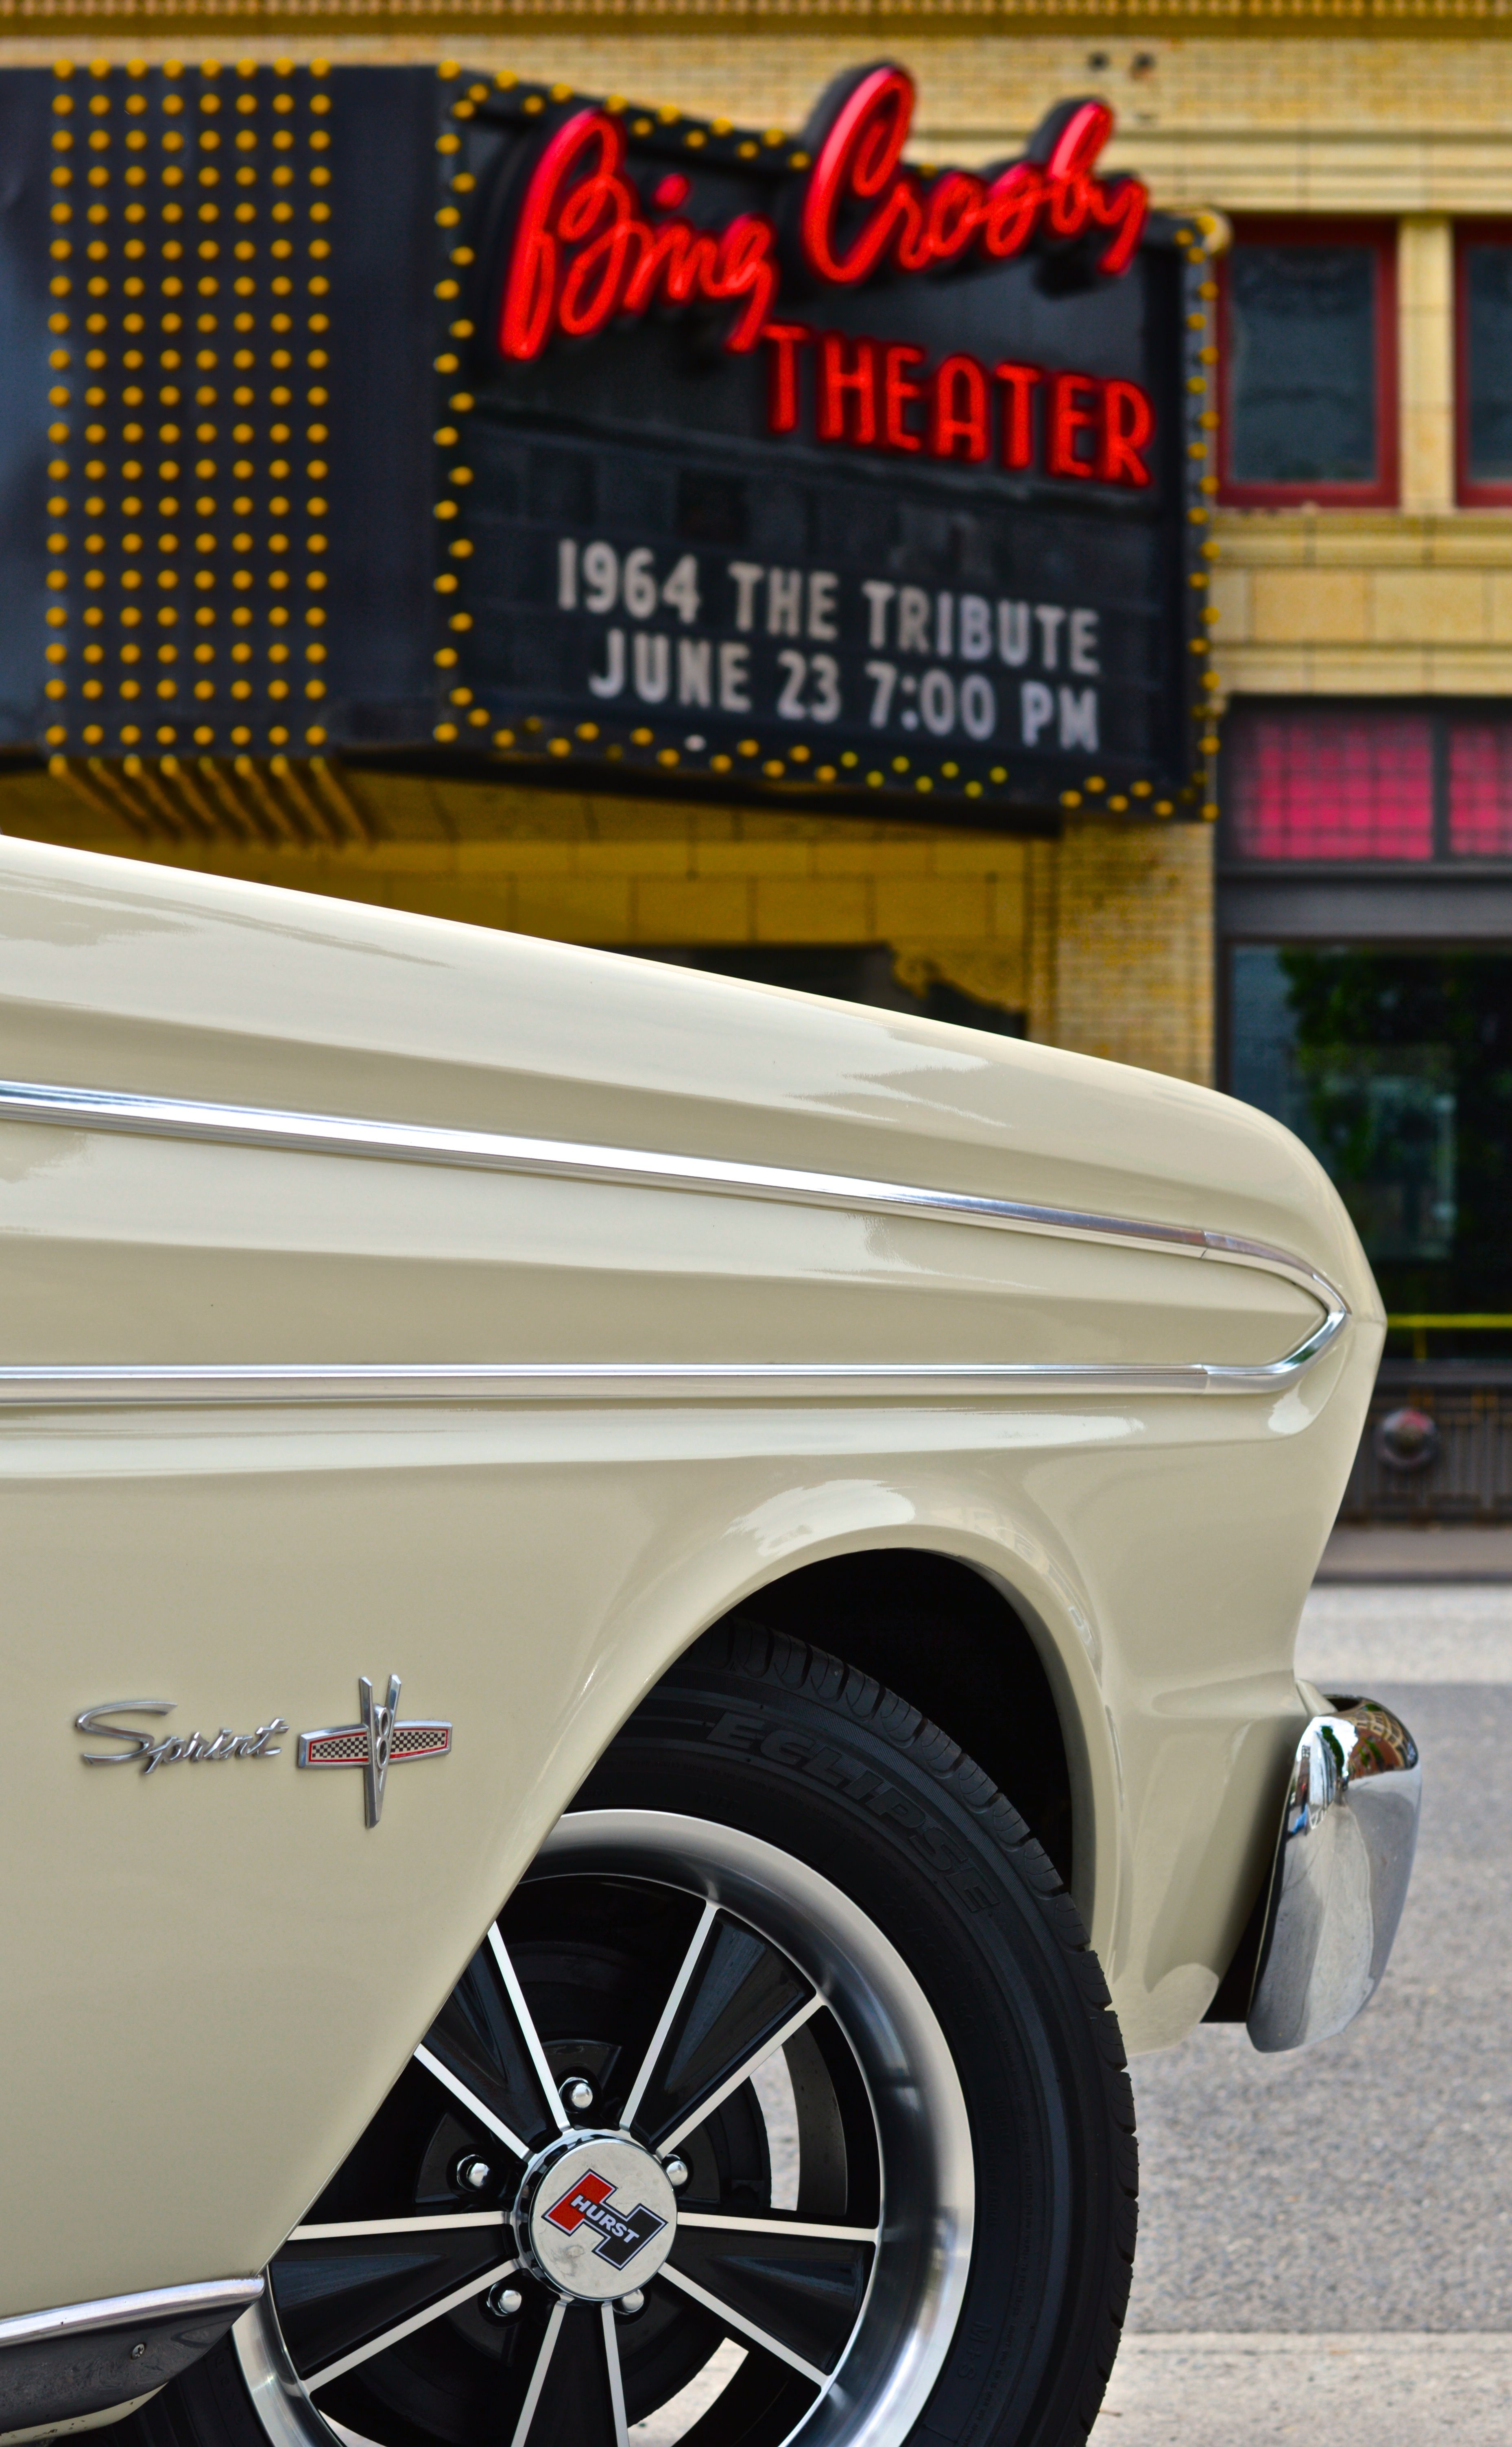 Smartphone wallpaper 64 ford falcon sprint convertible parked in front of the bing crosby theater downtown spokane wa